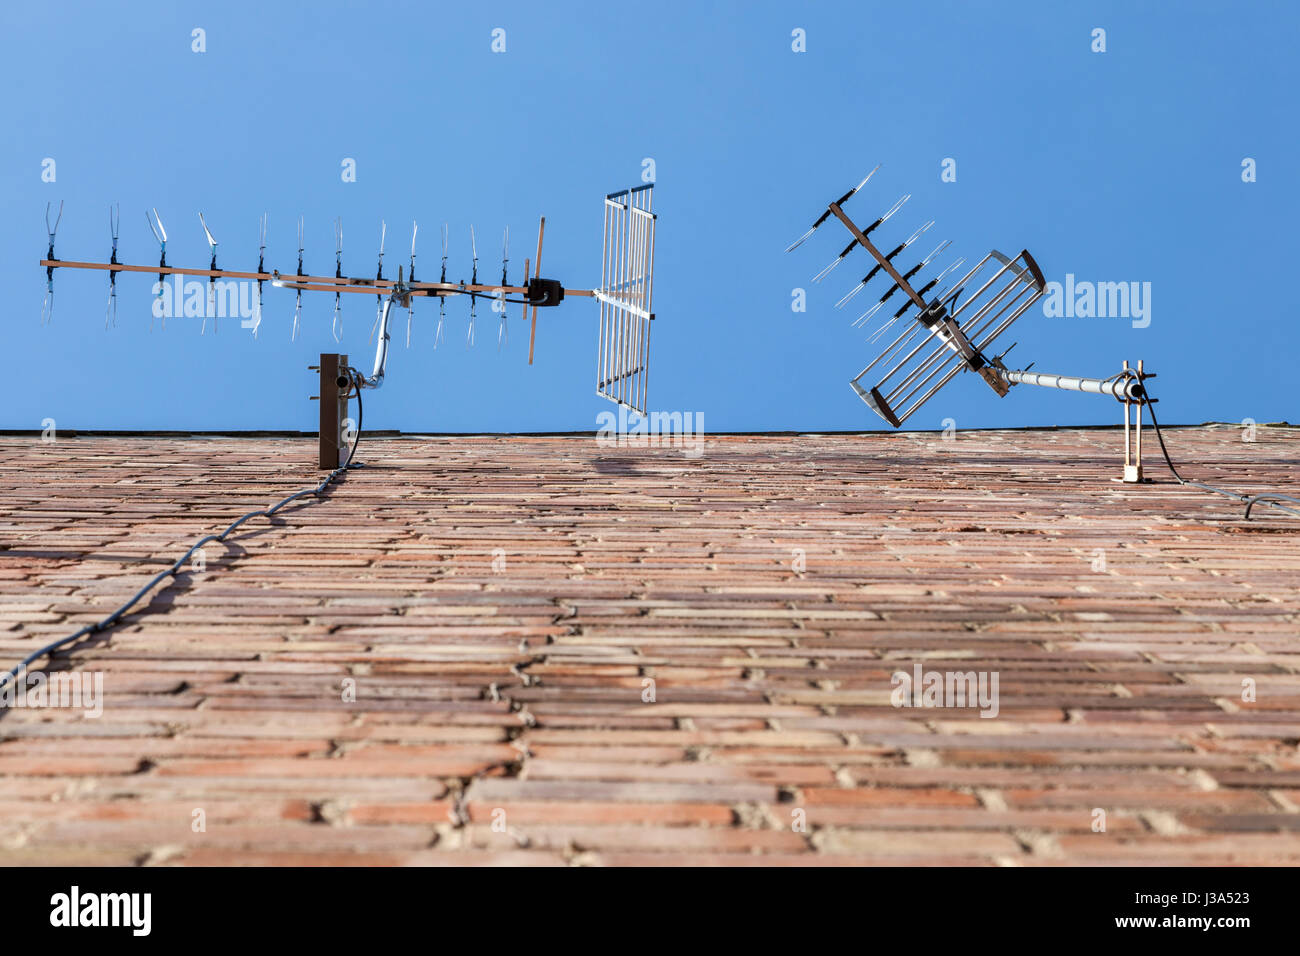 TV aerials on the side of a house, England, UK - Stock Image